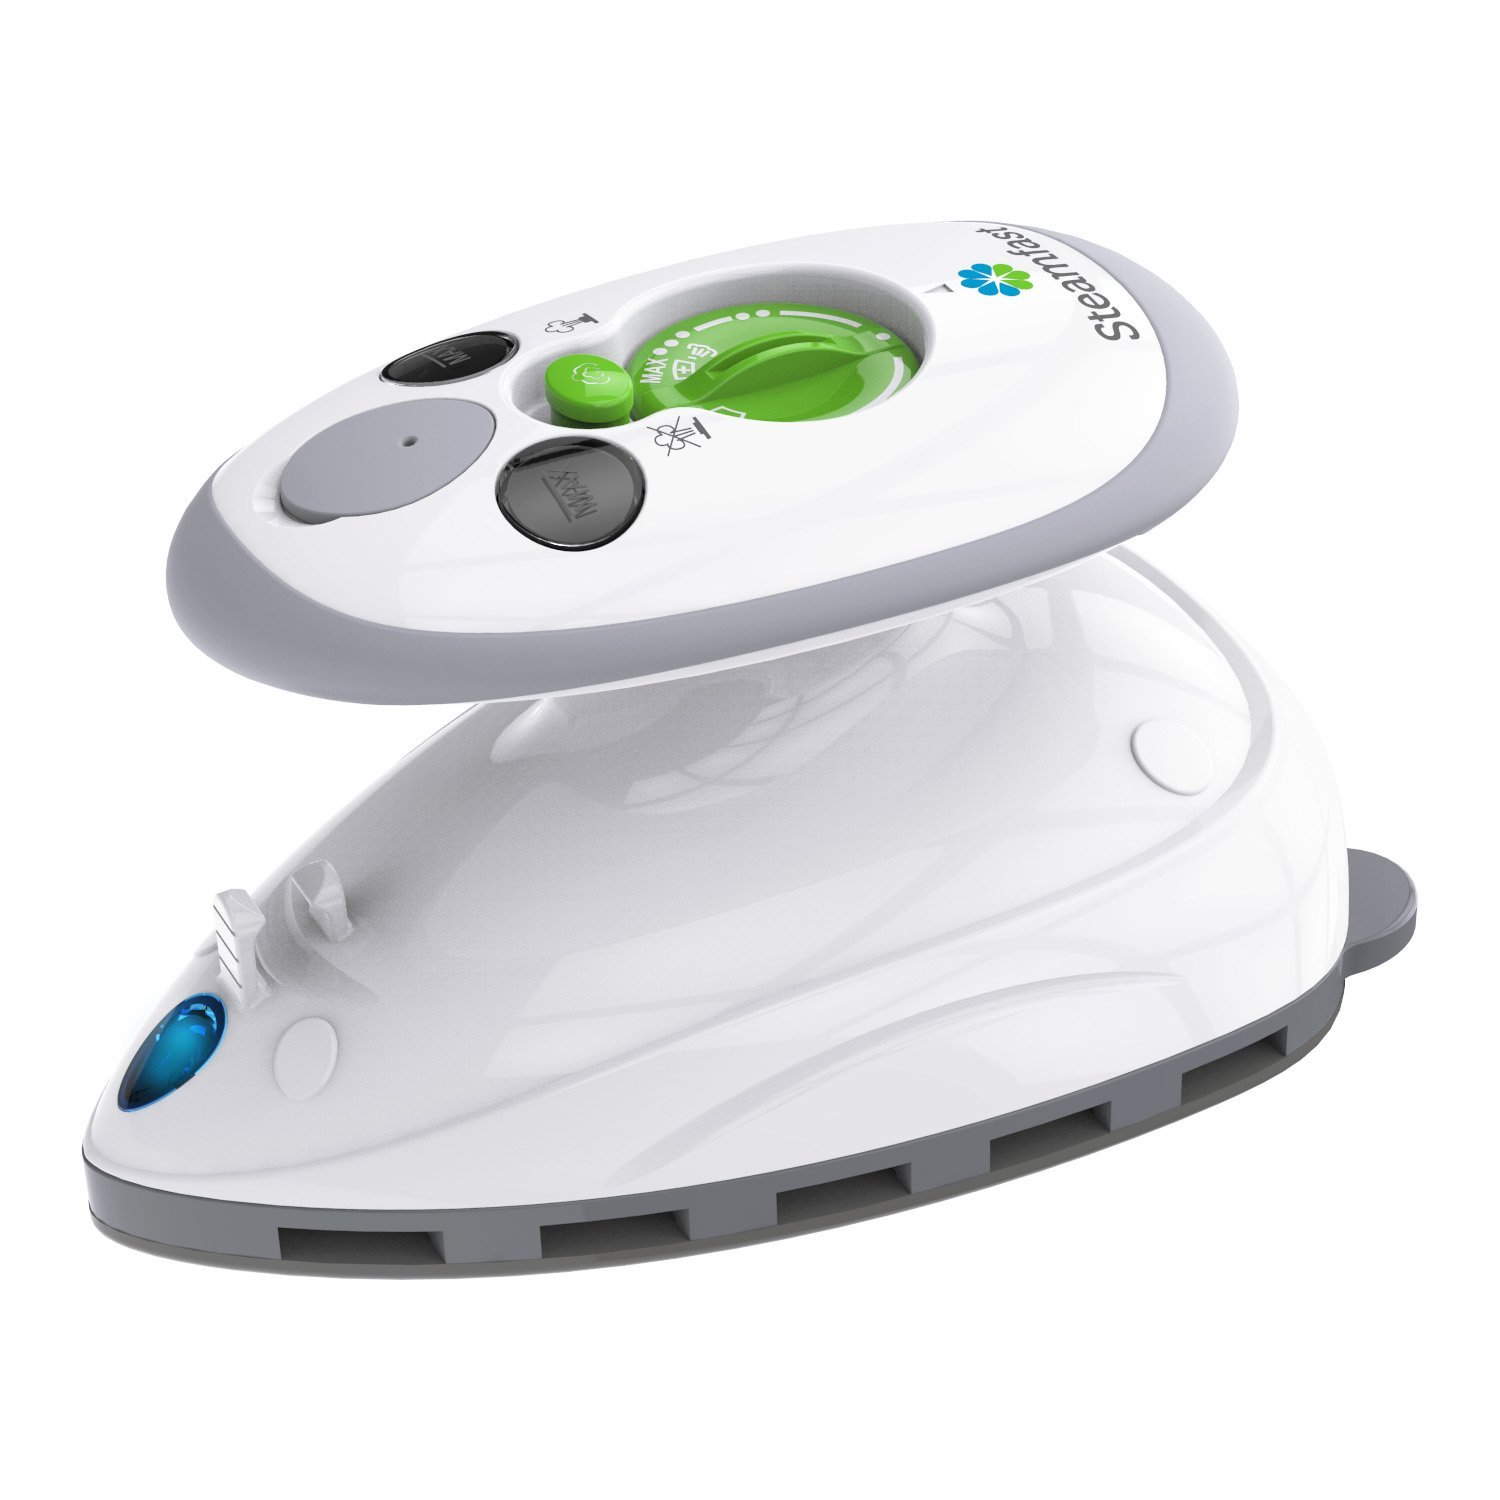 Steamfast SF-717 Mini Steam Iron